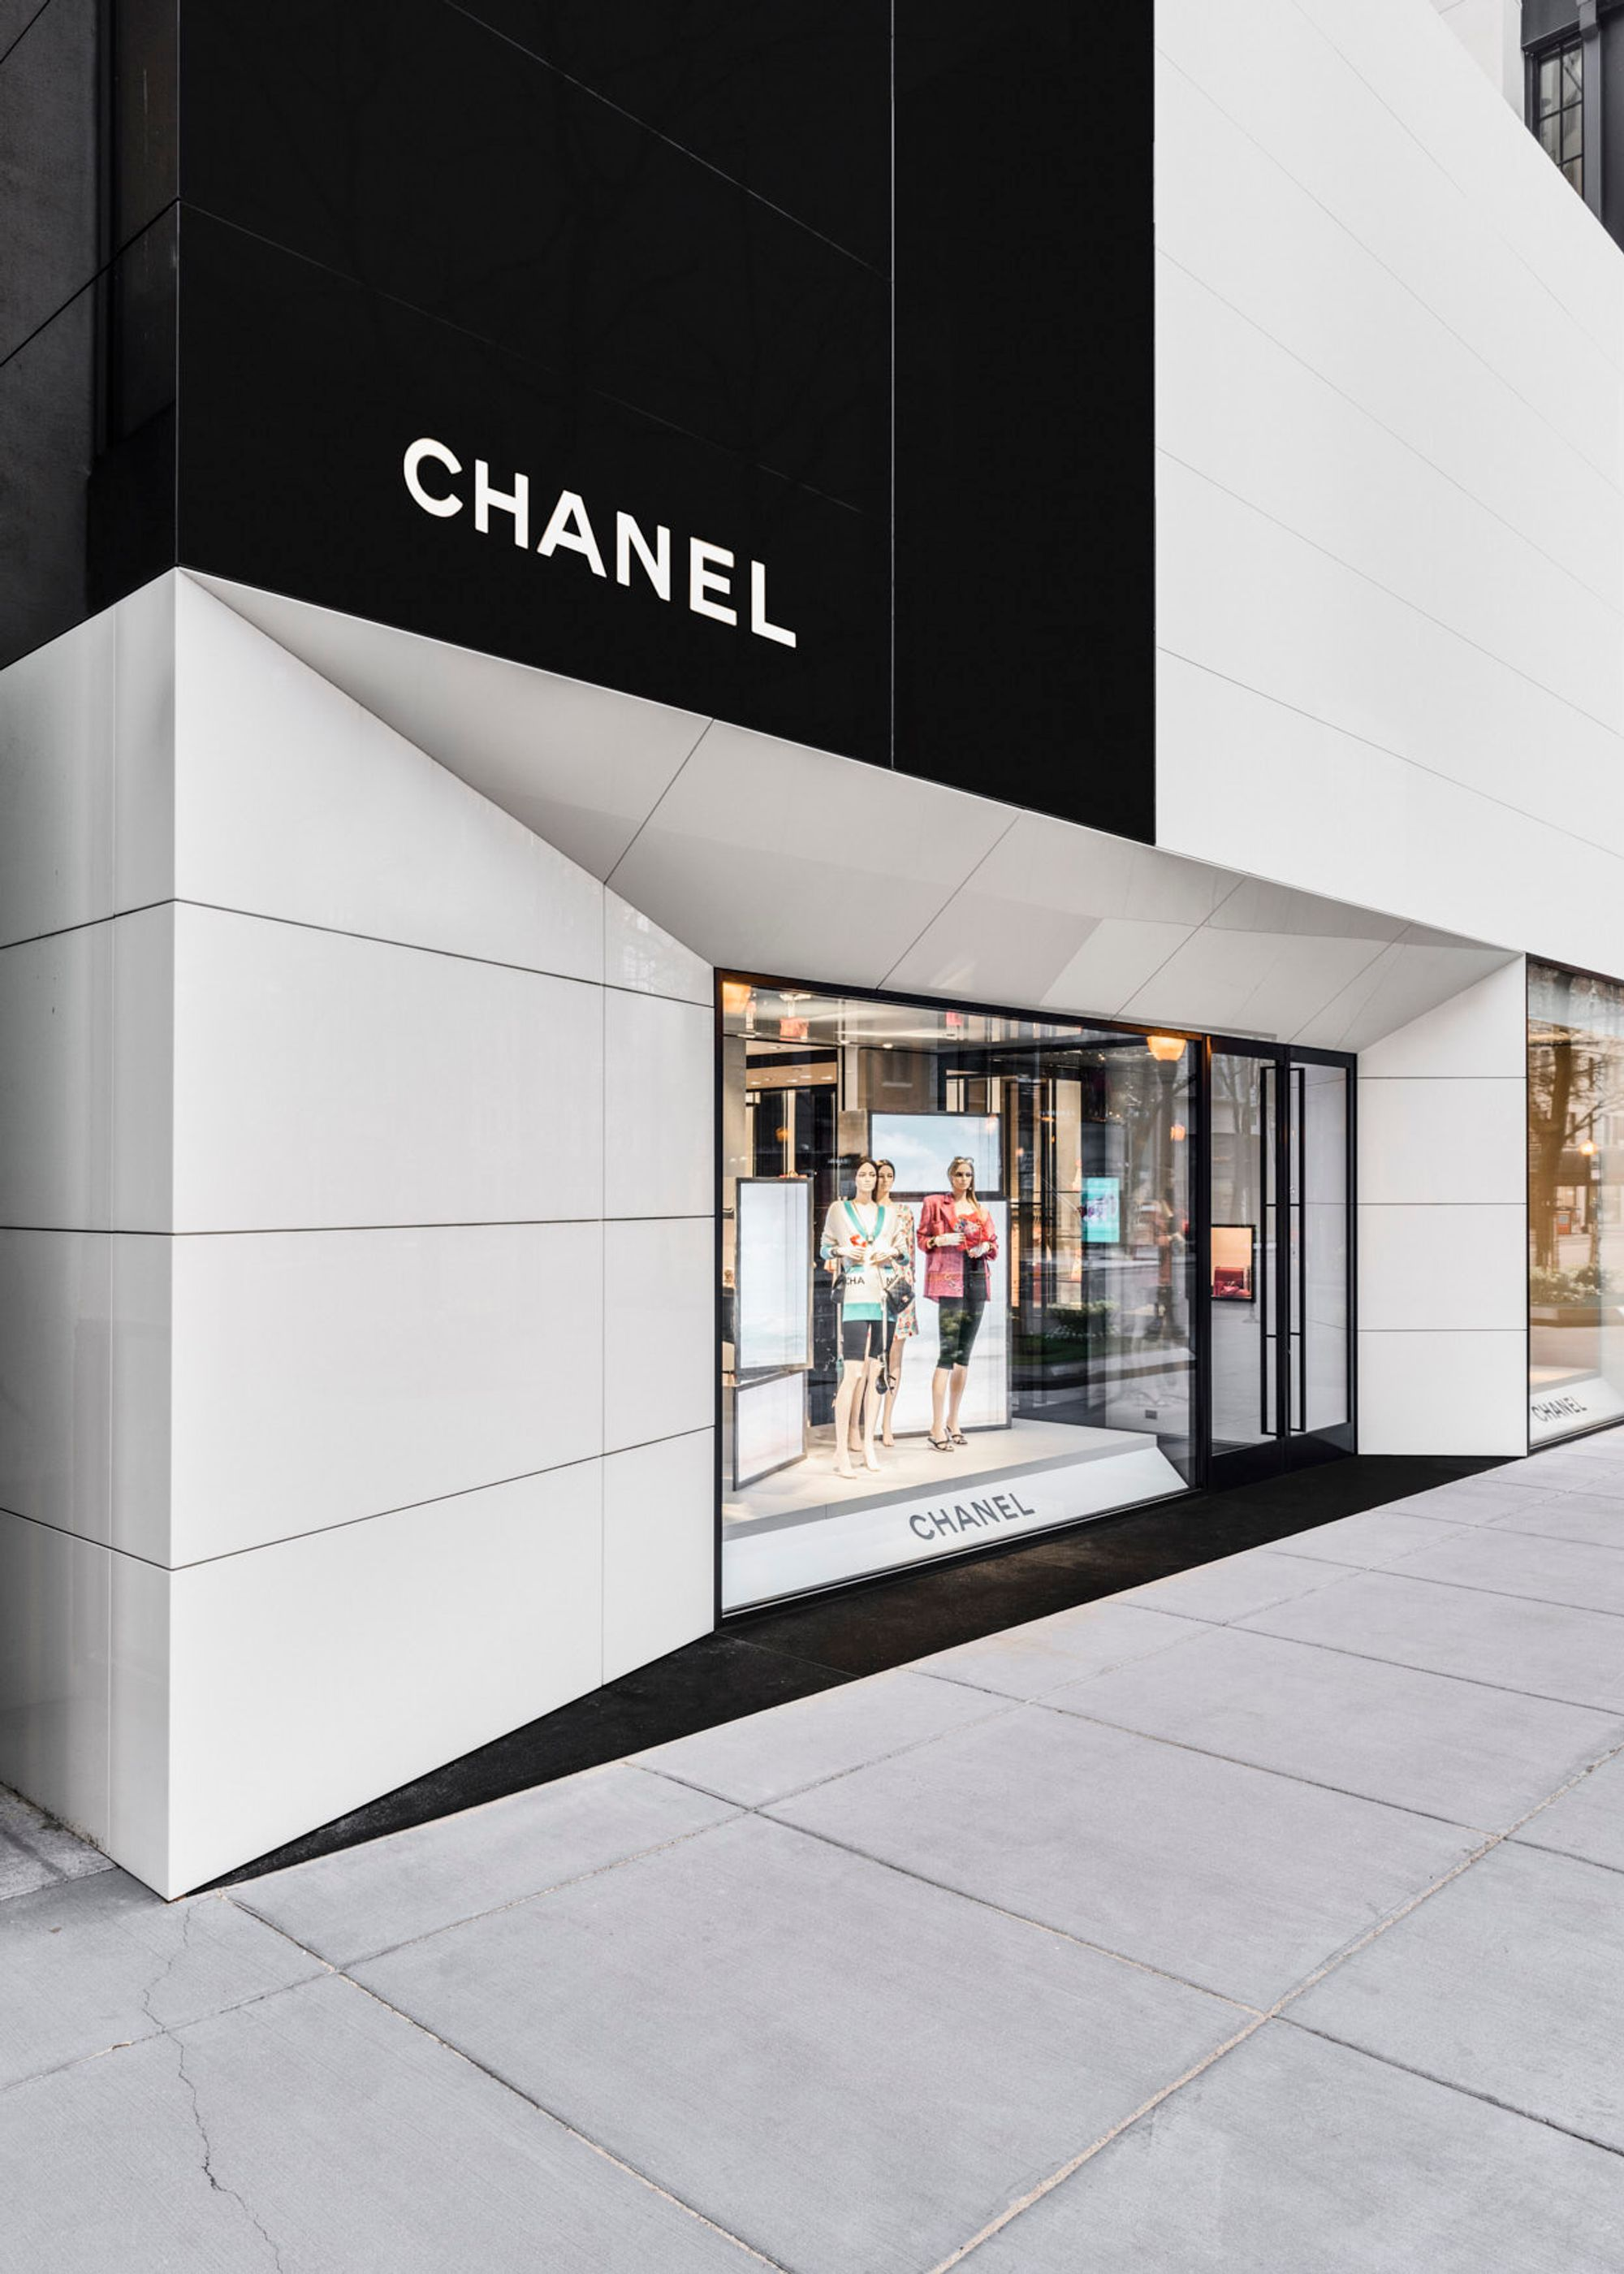 Project Image for Chanel Chicago